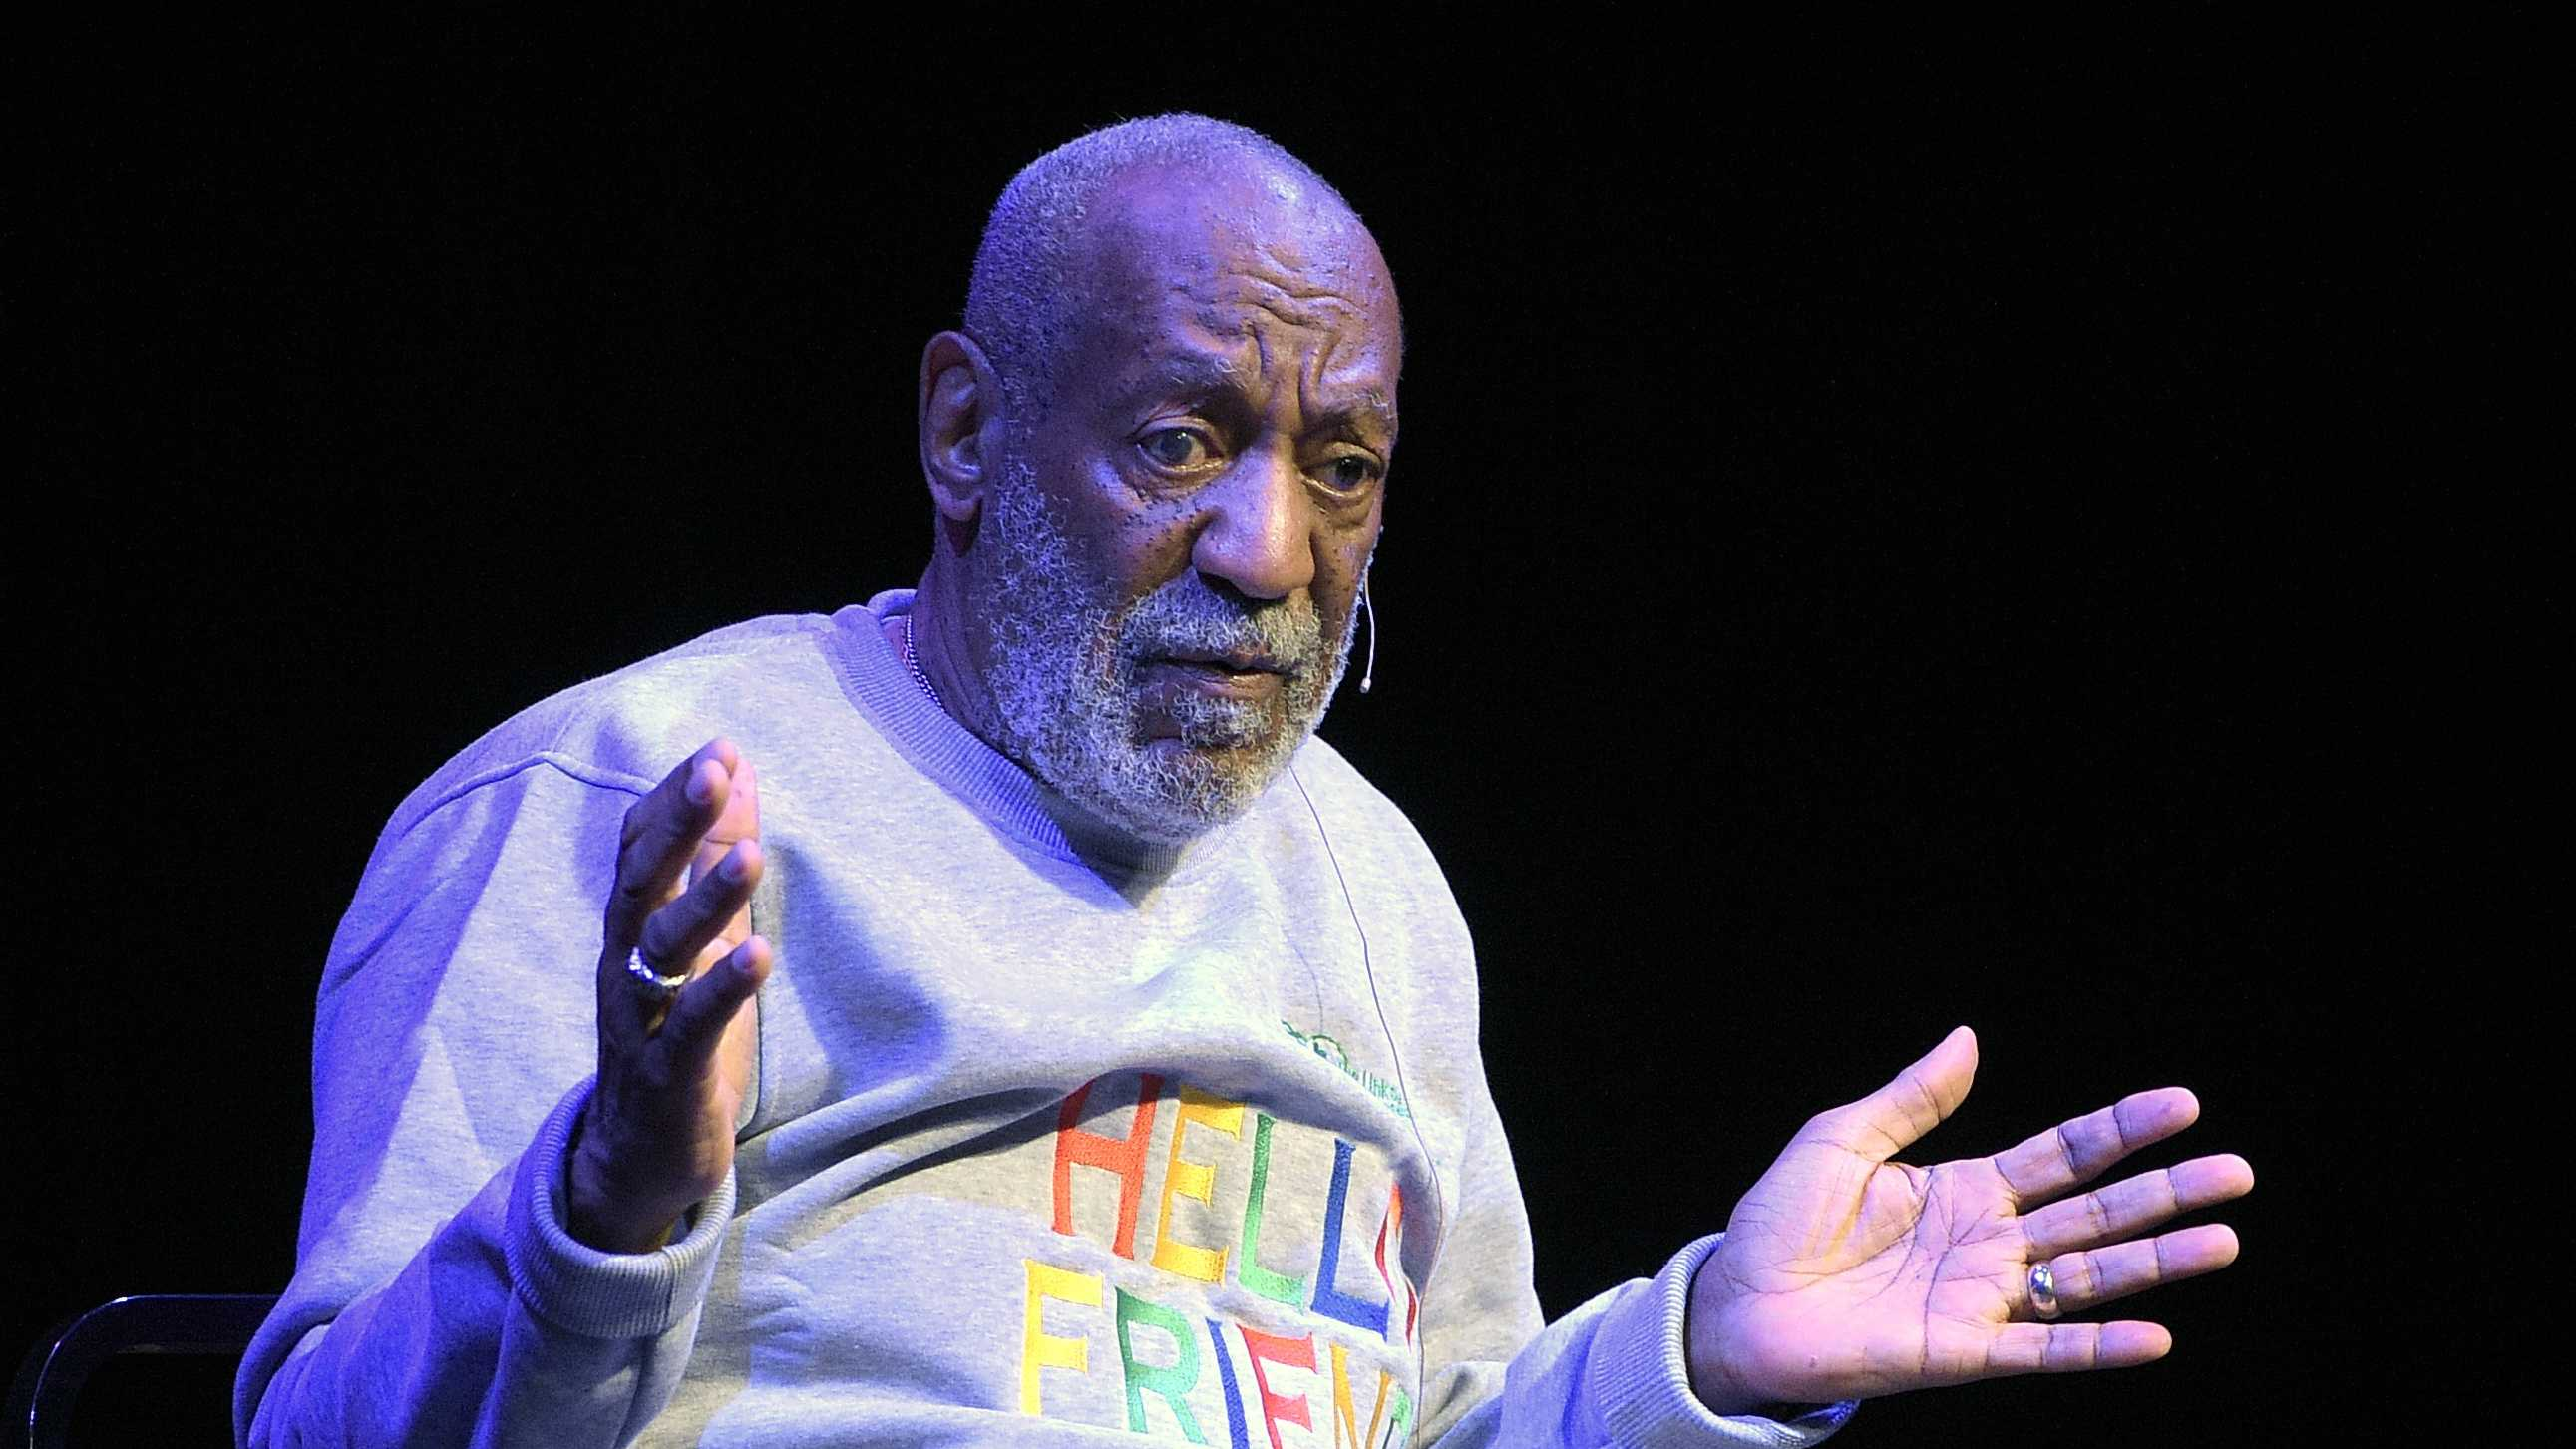 Comedian Bill Cosby performs at the Maxwell C. King Center for the Performing Arts, in Melbourne, Fla., Friday, Nov. 21, 2014.